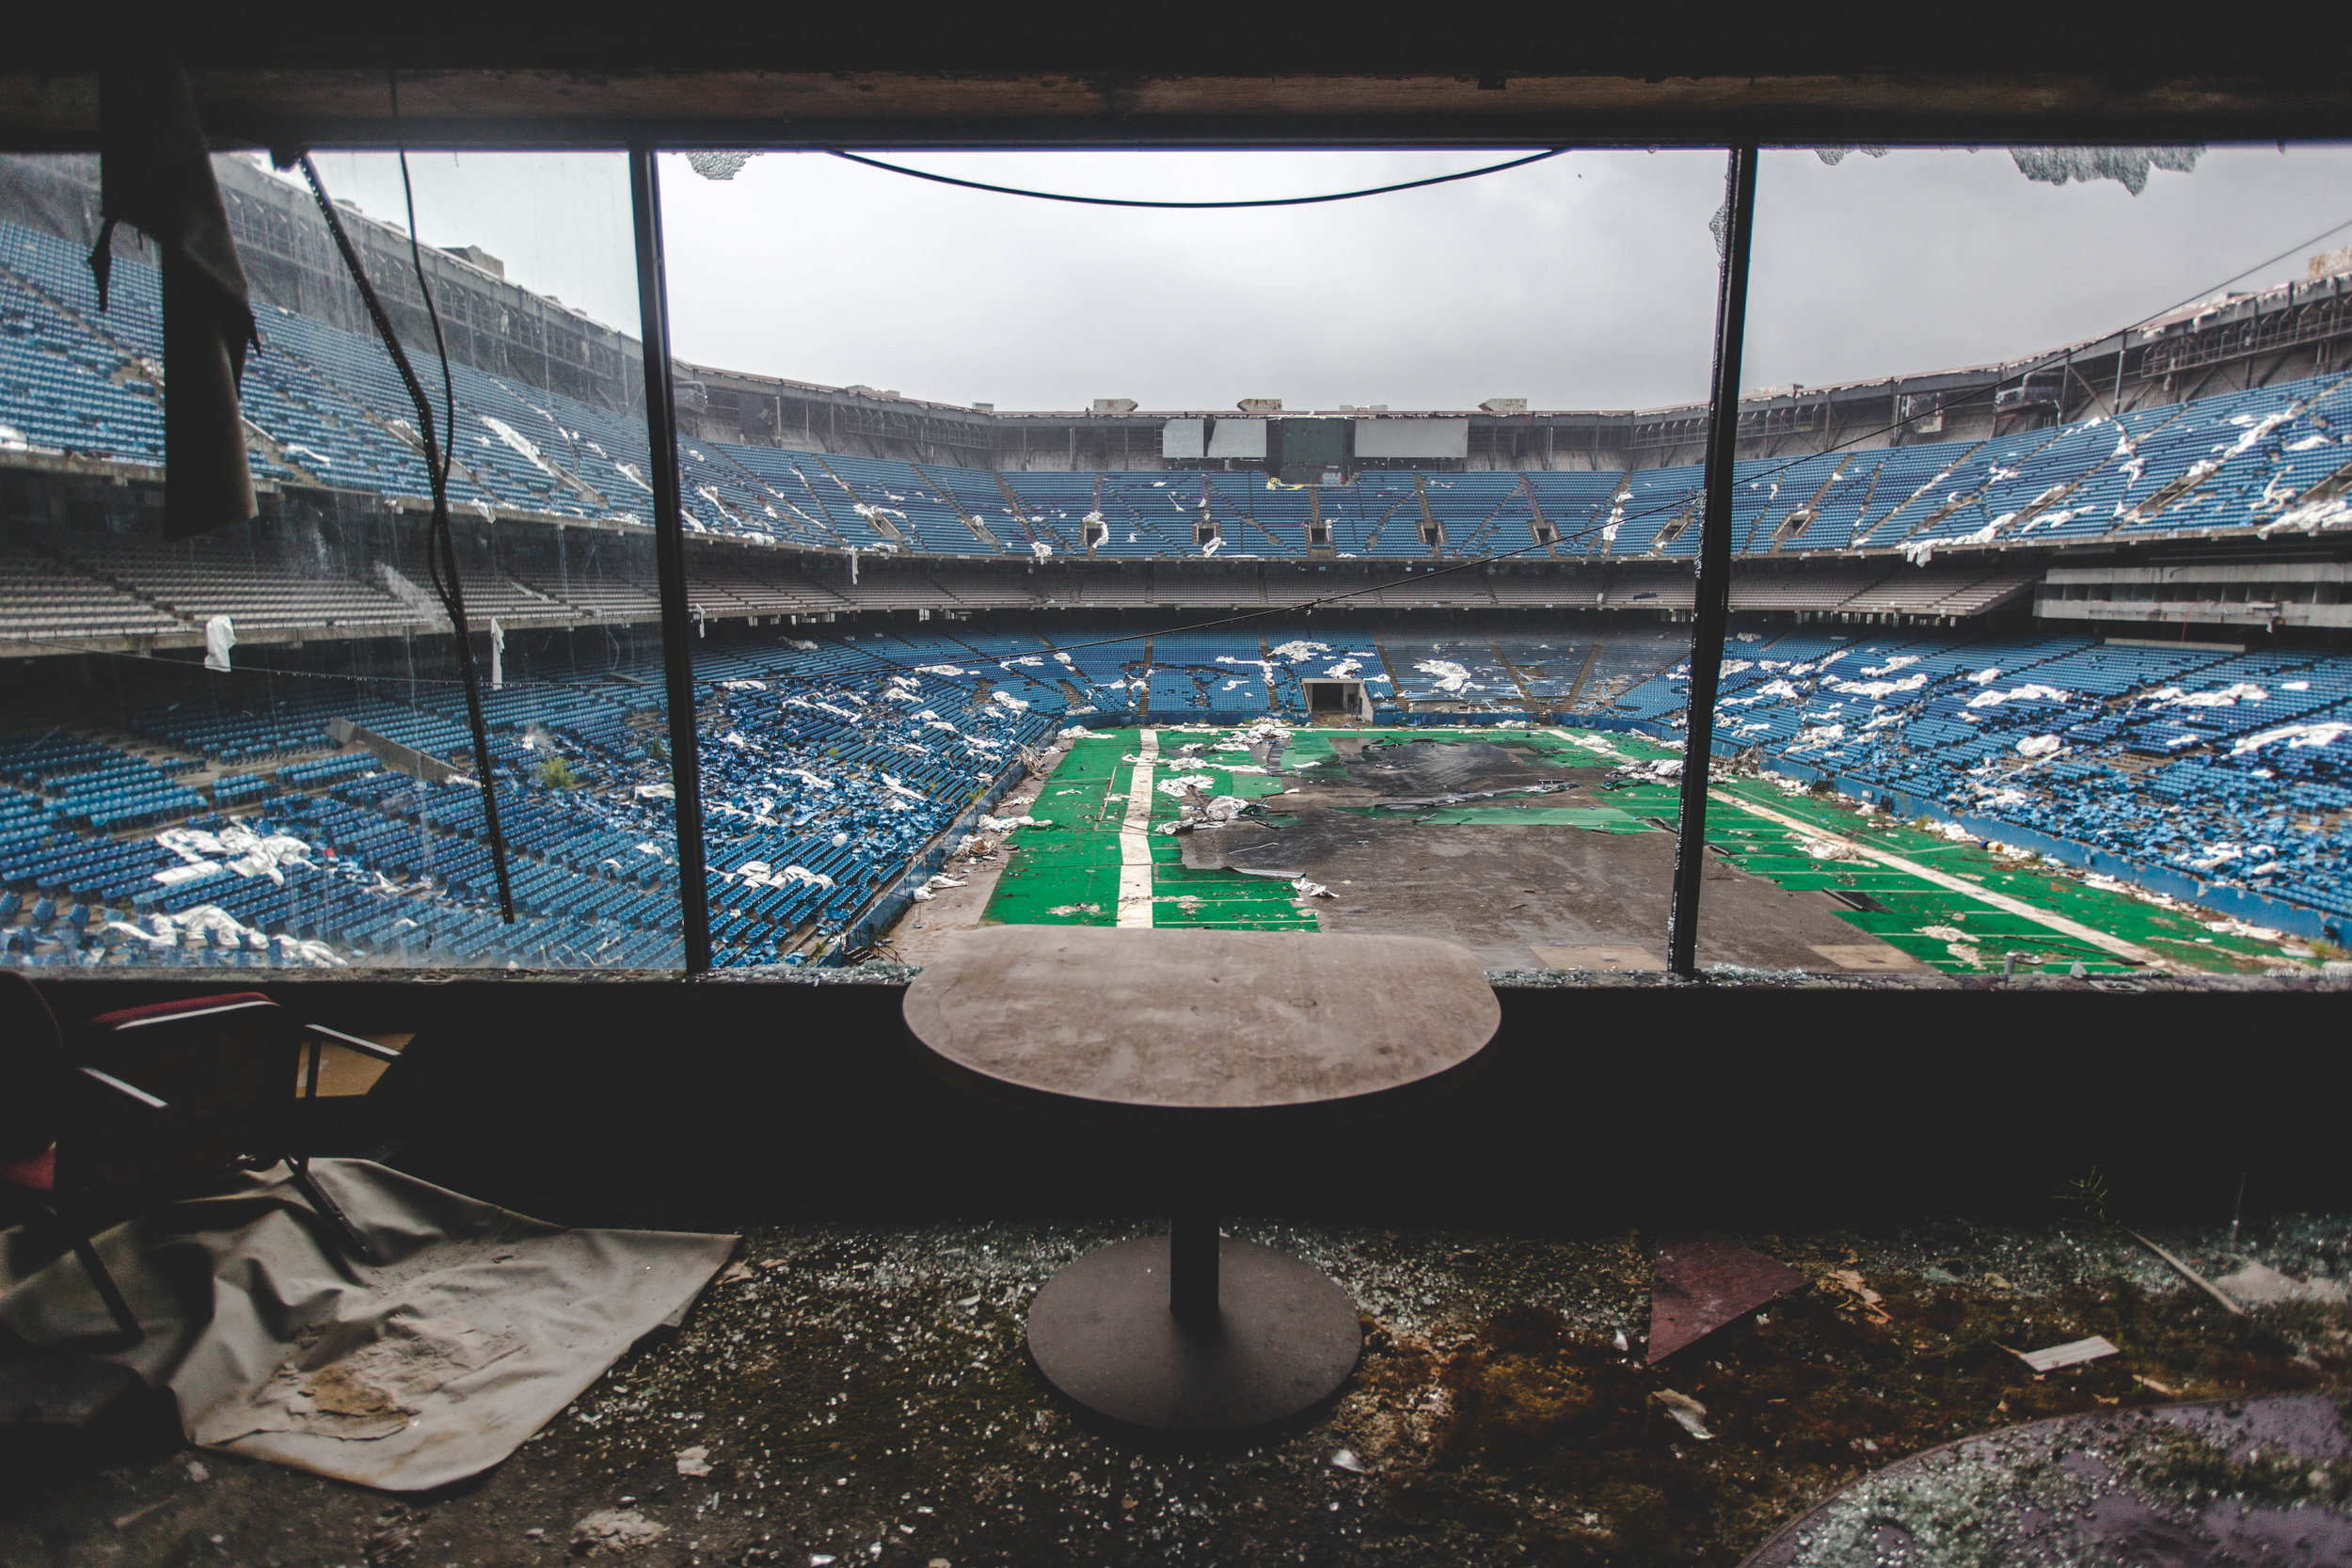 Pontiac Silverdome – Michigan